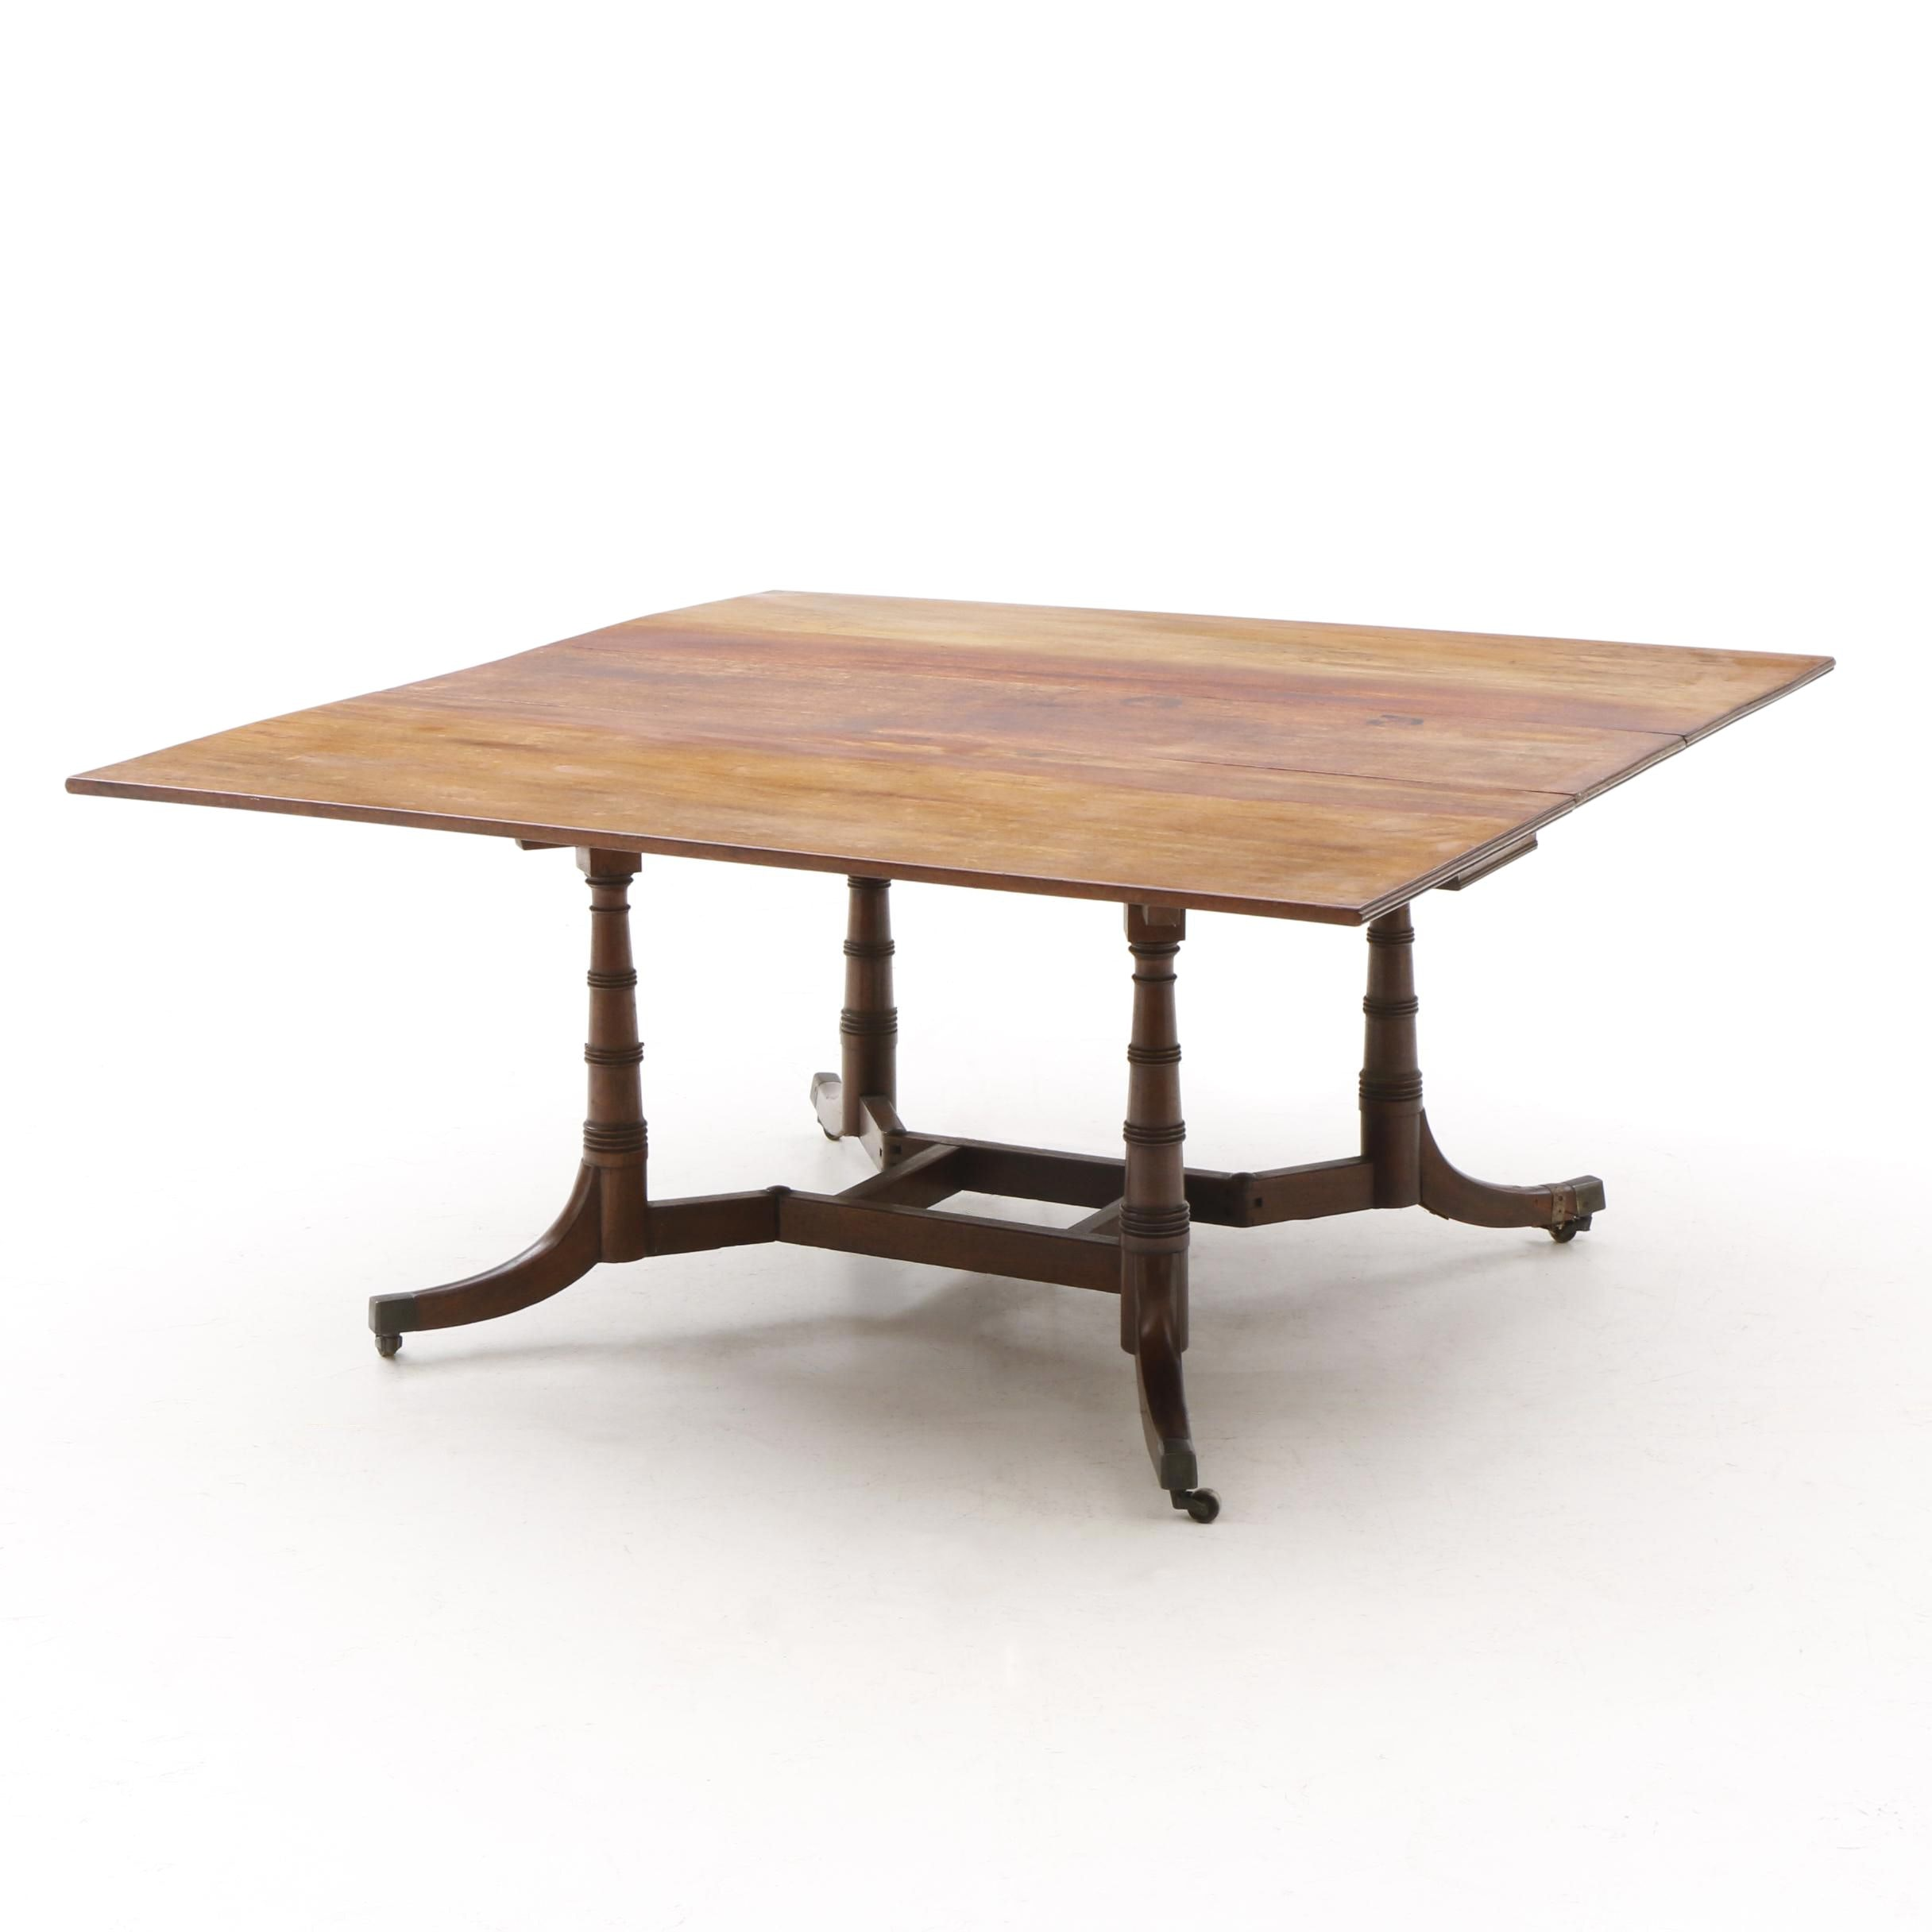 Regency Style Drop Leaf Table with Gate Leg Support in Mahogany